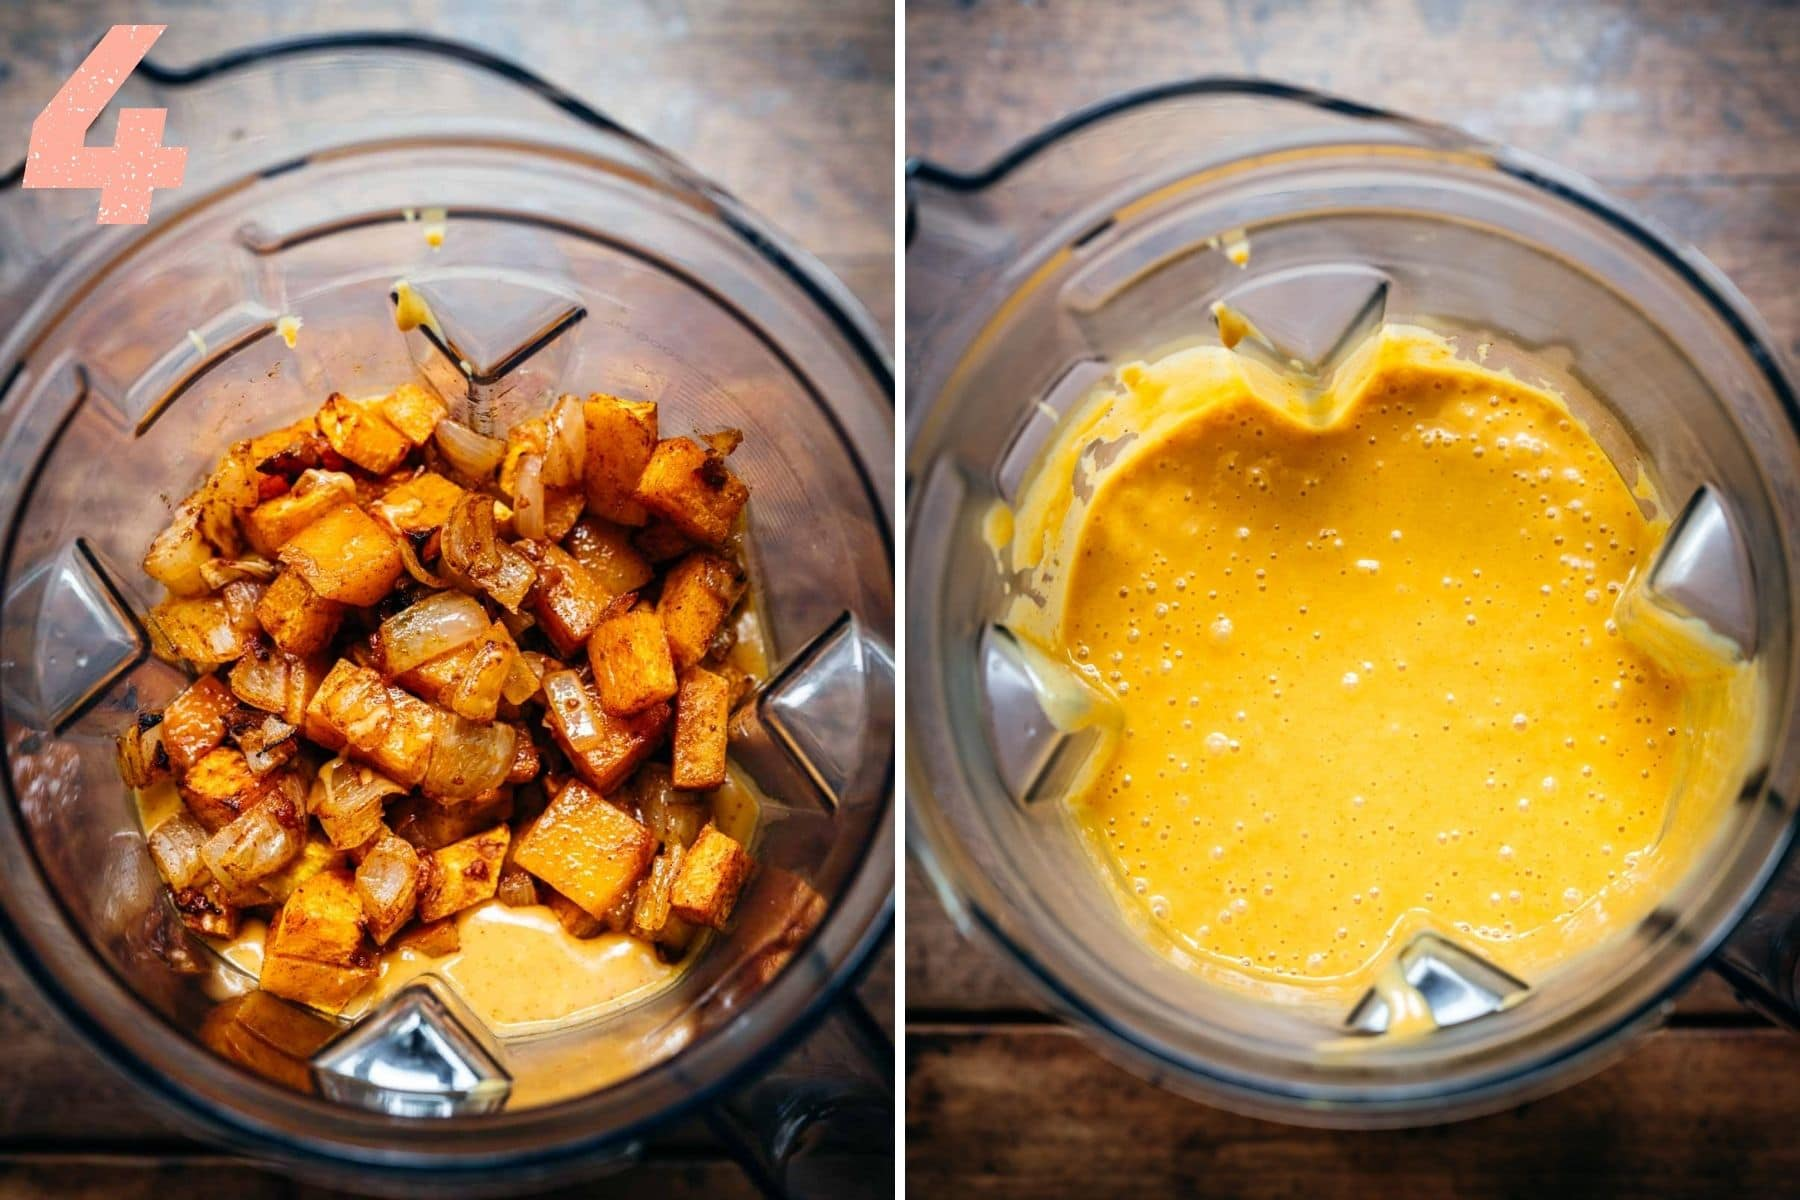 On the left: roasted butternut squash and onions in a blender. On the right: onions, squash, and sauce mixture after blending.